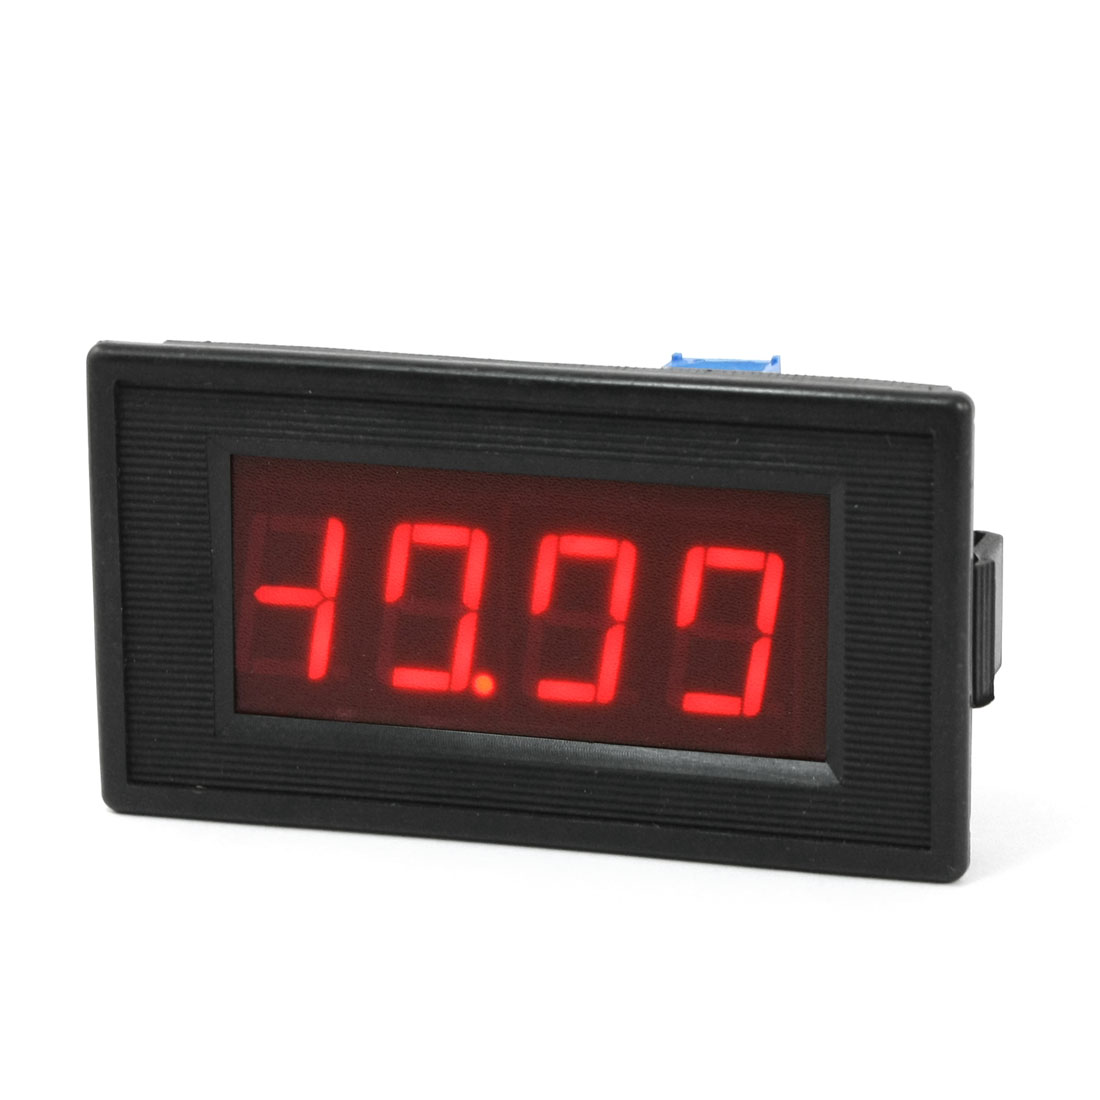 AC 20A Red LED Display Current Tester 3 1/2 Digital Ammeter